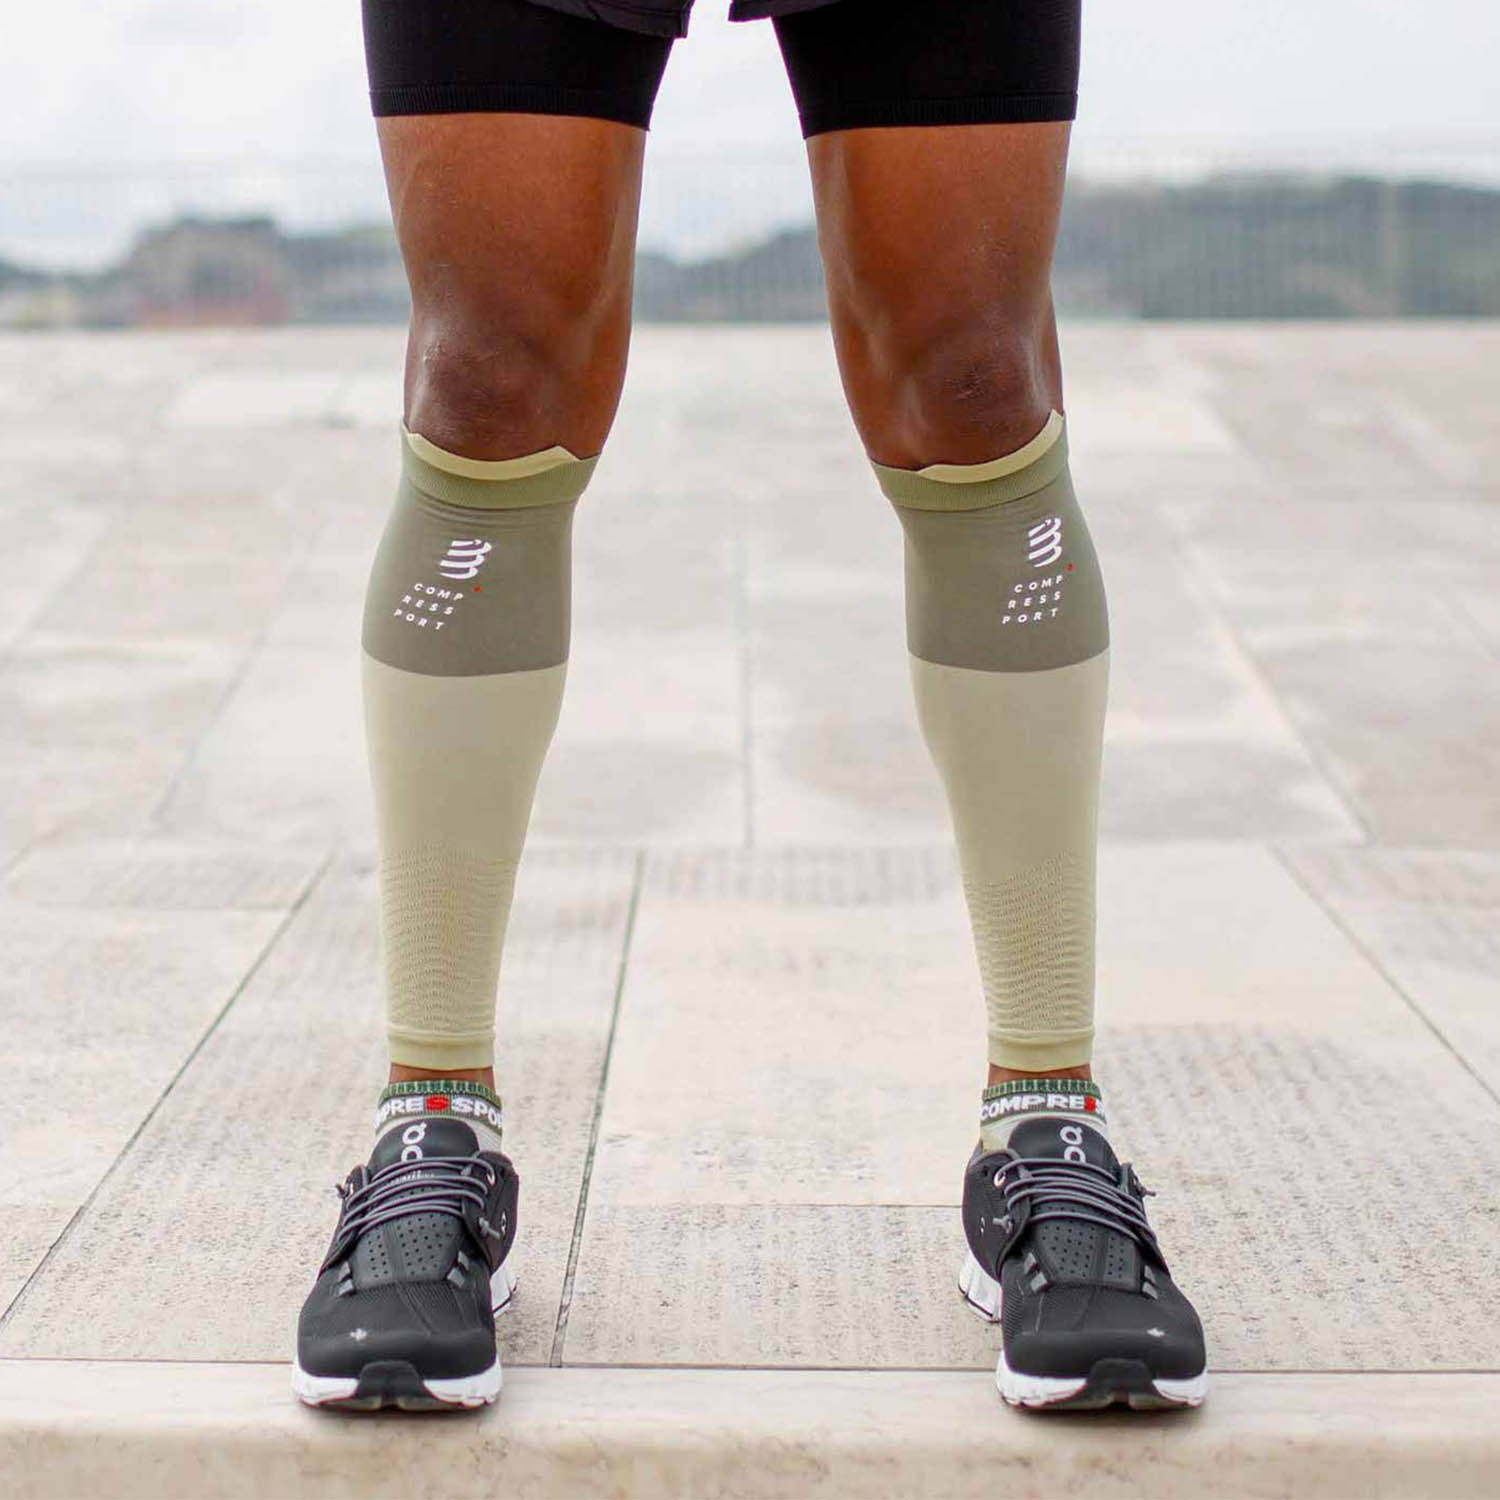 Compressport R2V2 Calf Sleeves - Dusty Olive